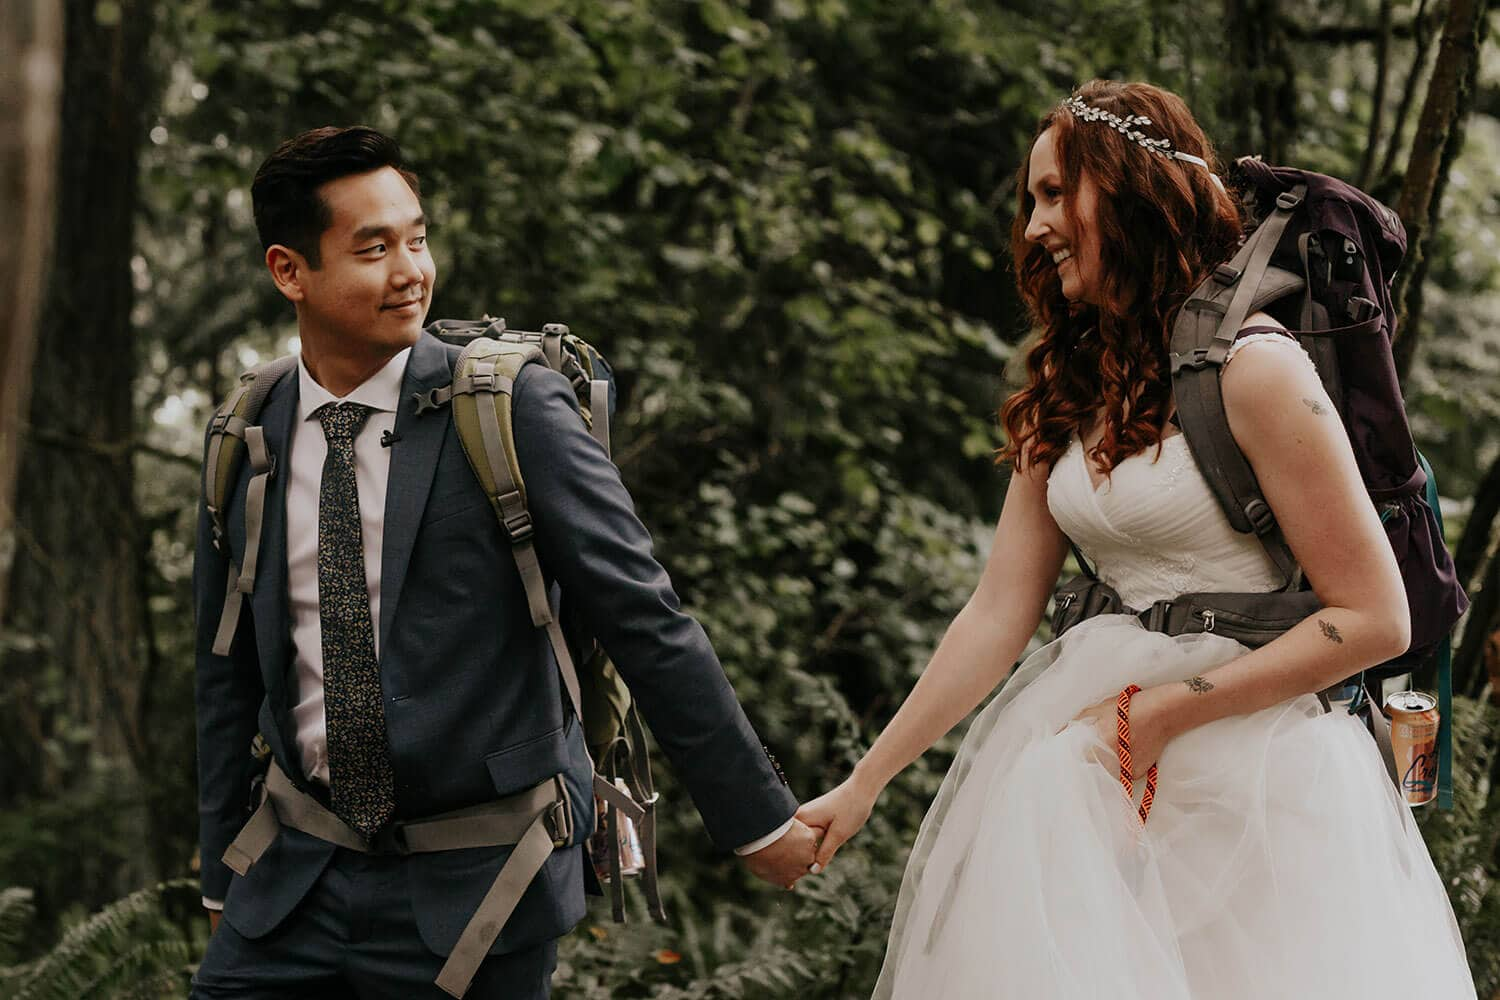 Bride and groom hiking with backpacks in Seattle after they got married at home